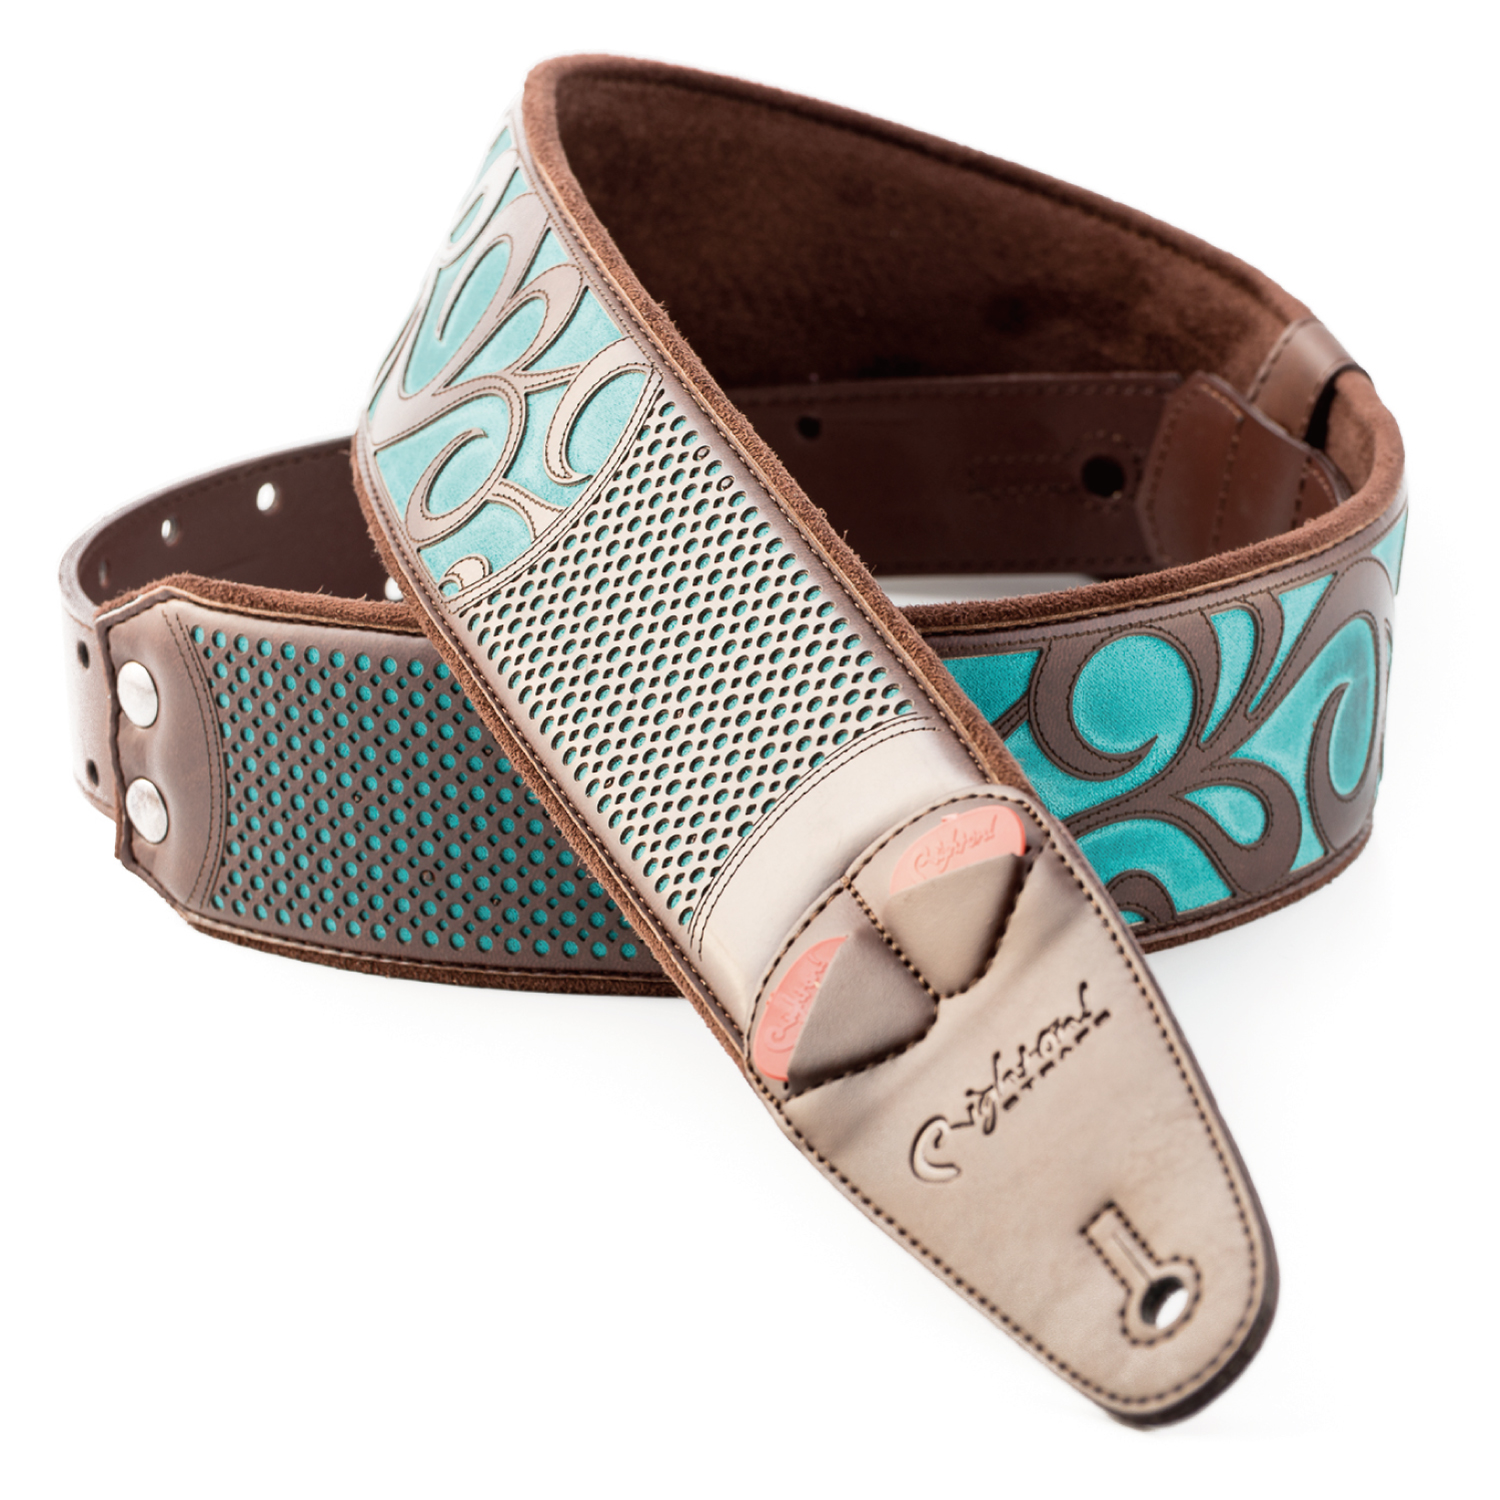 MOJO-NASHVILLE-TEAL-RIGHTONSTRAPS-(5)1500